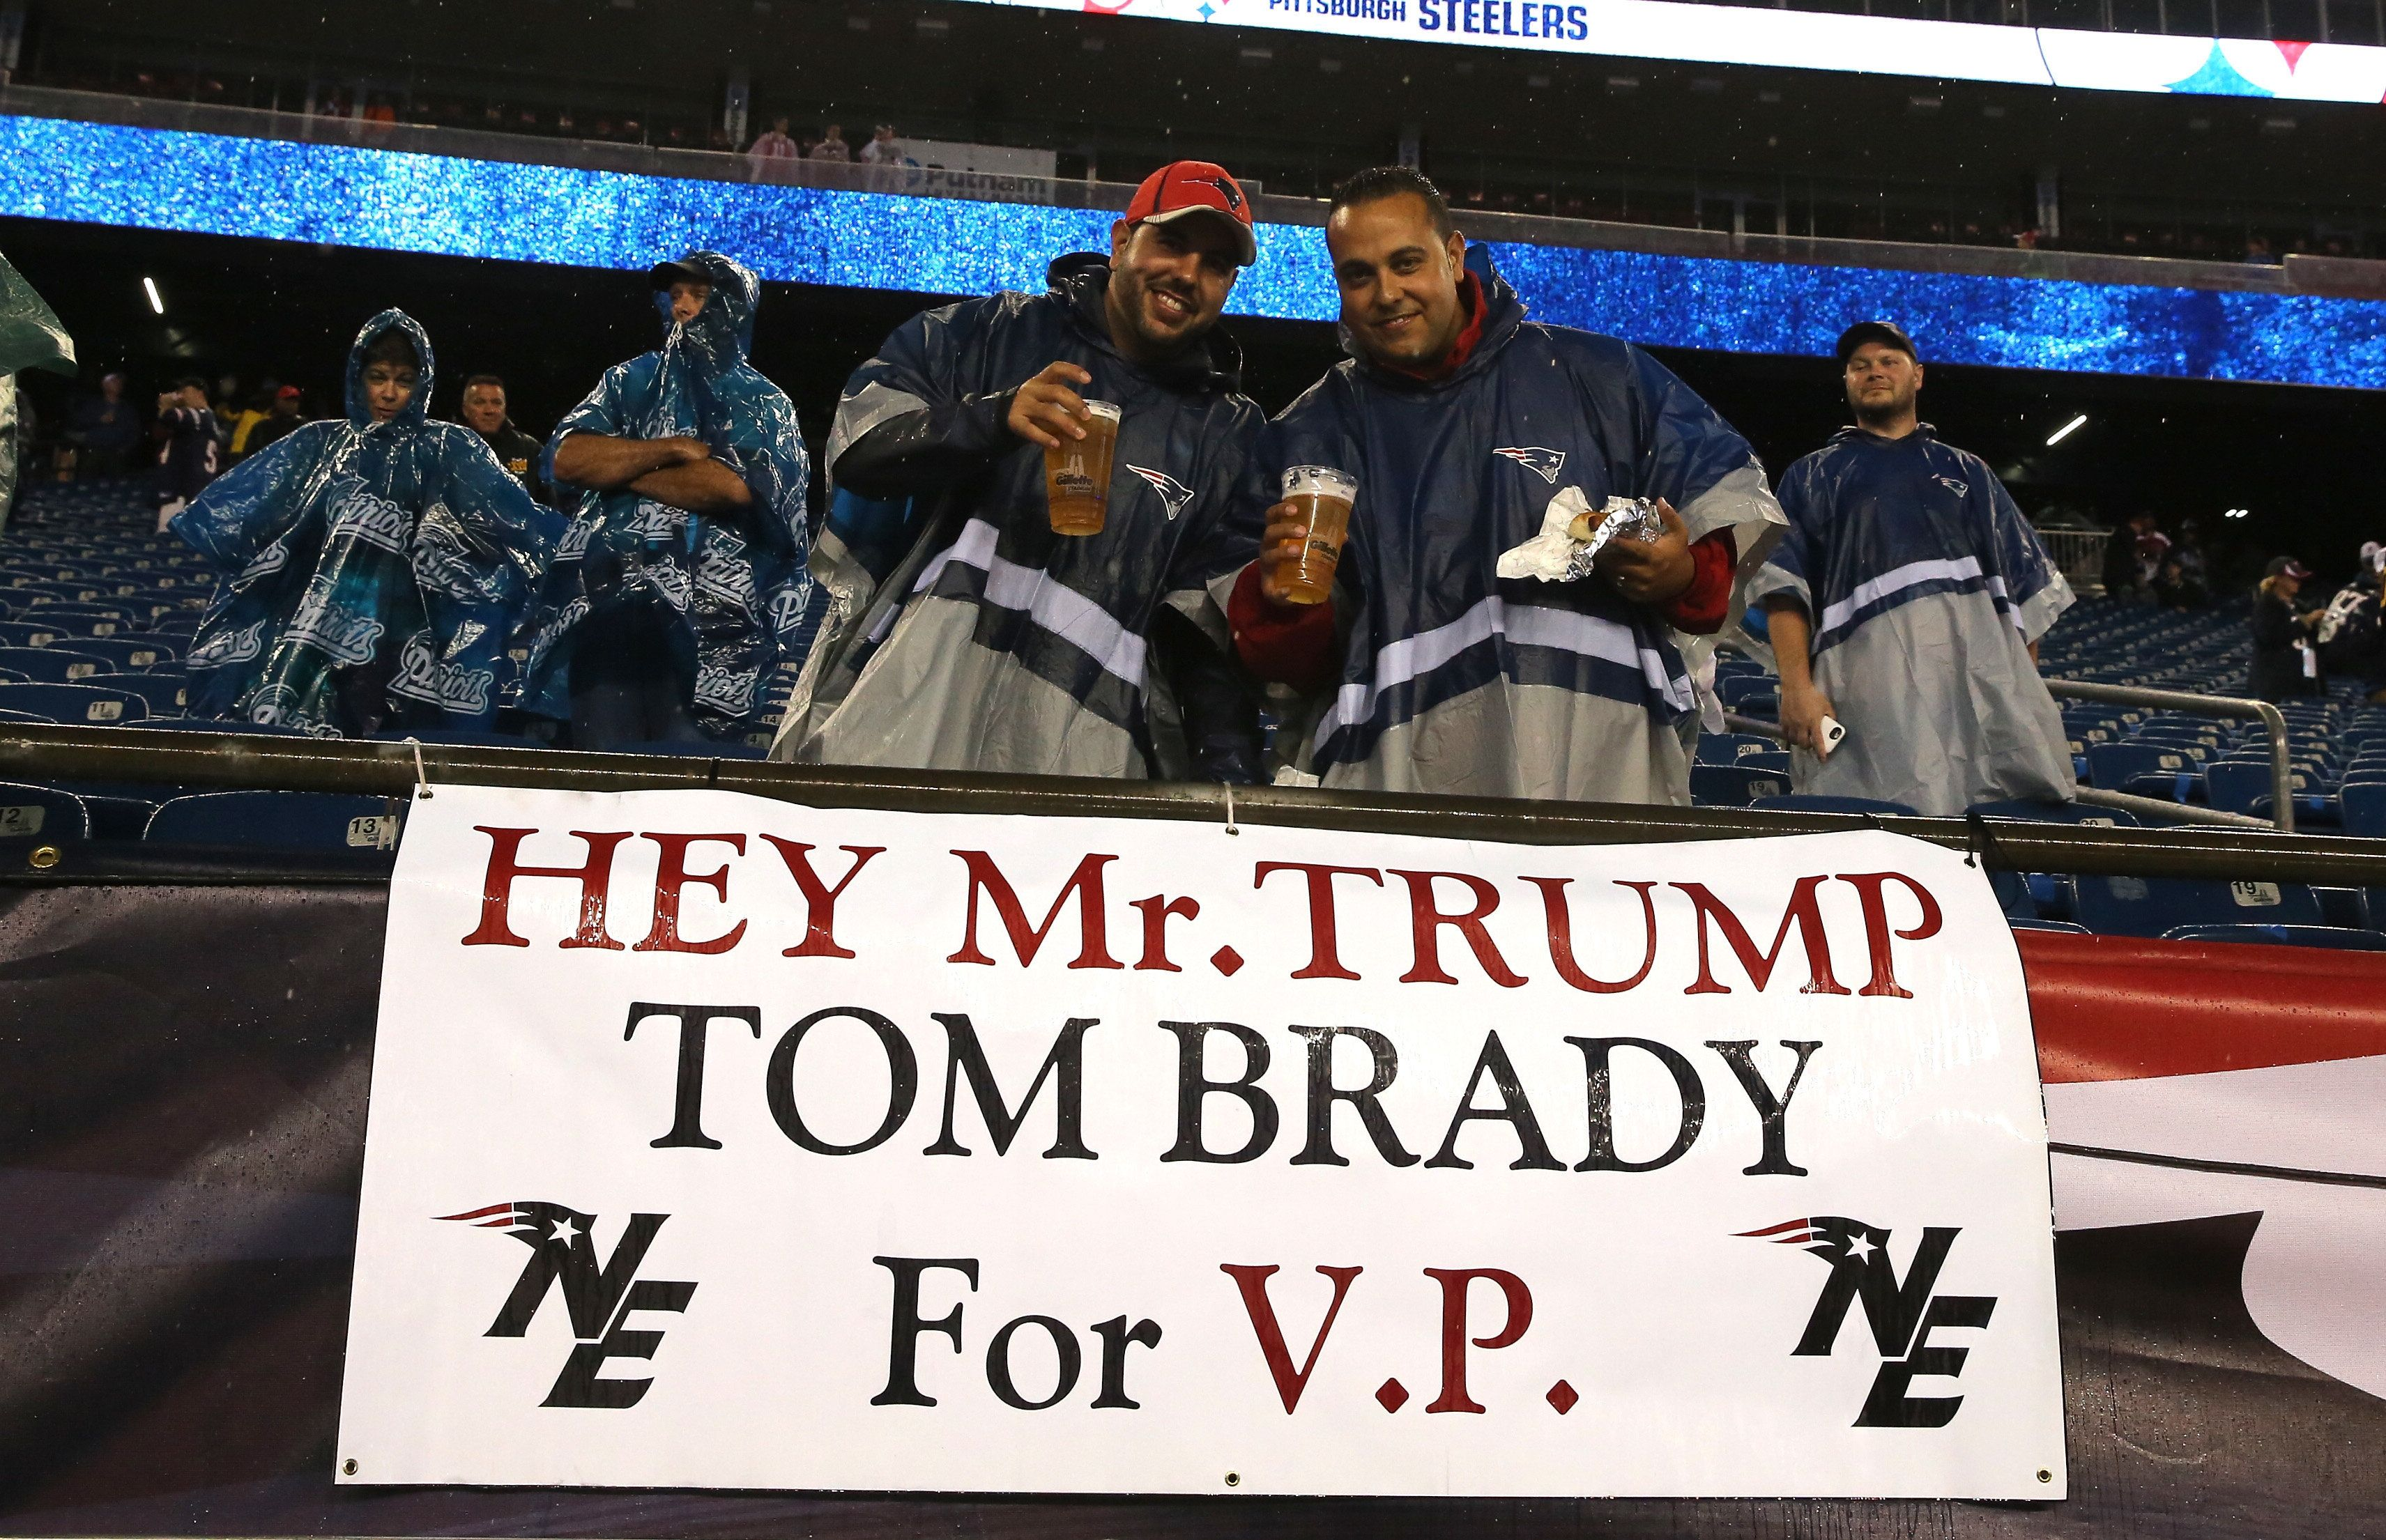 Fans referenced the apparent allegiancebetween Donald Trump and Tom Bradyat the Patriots-Steelers gameearli